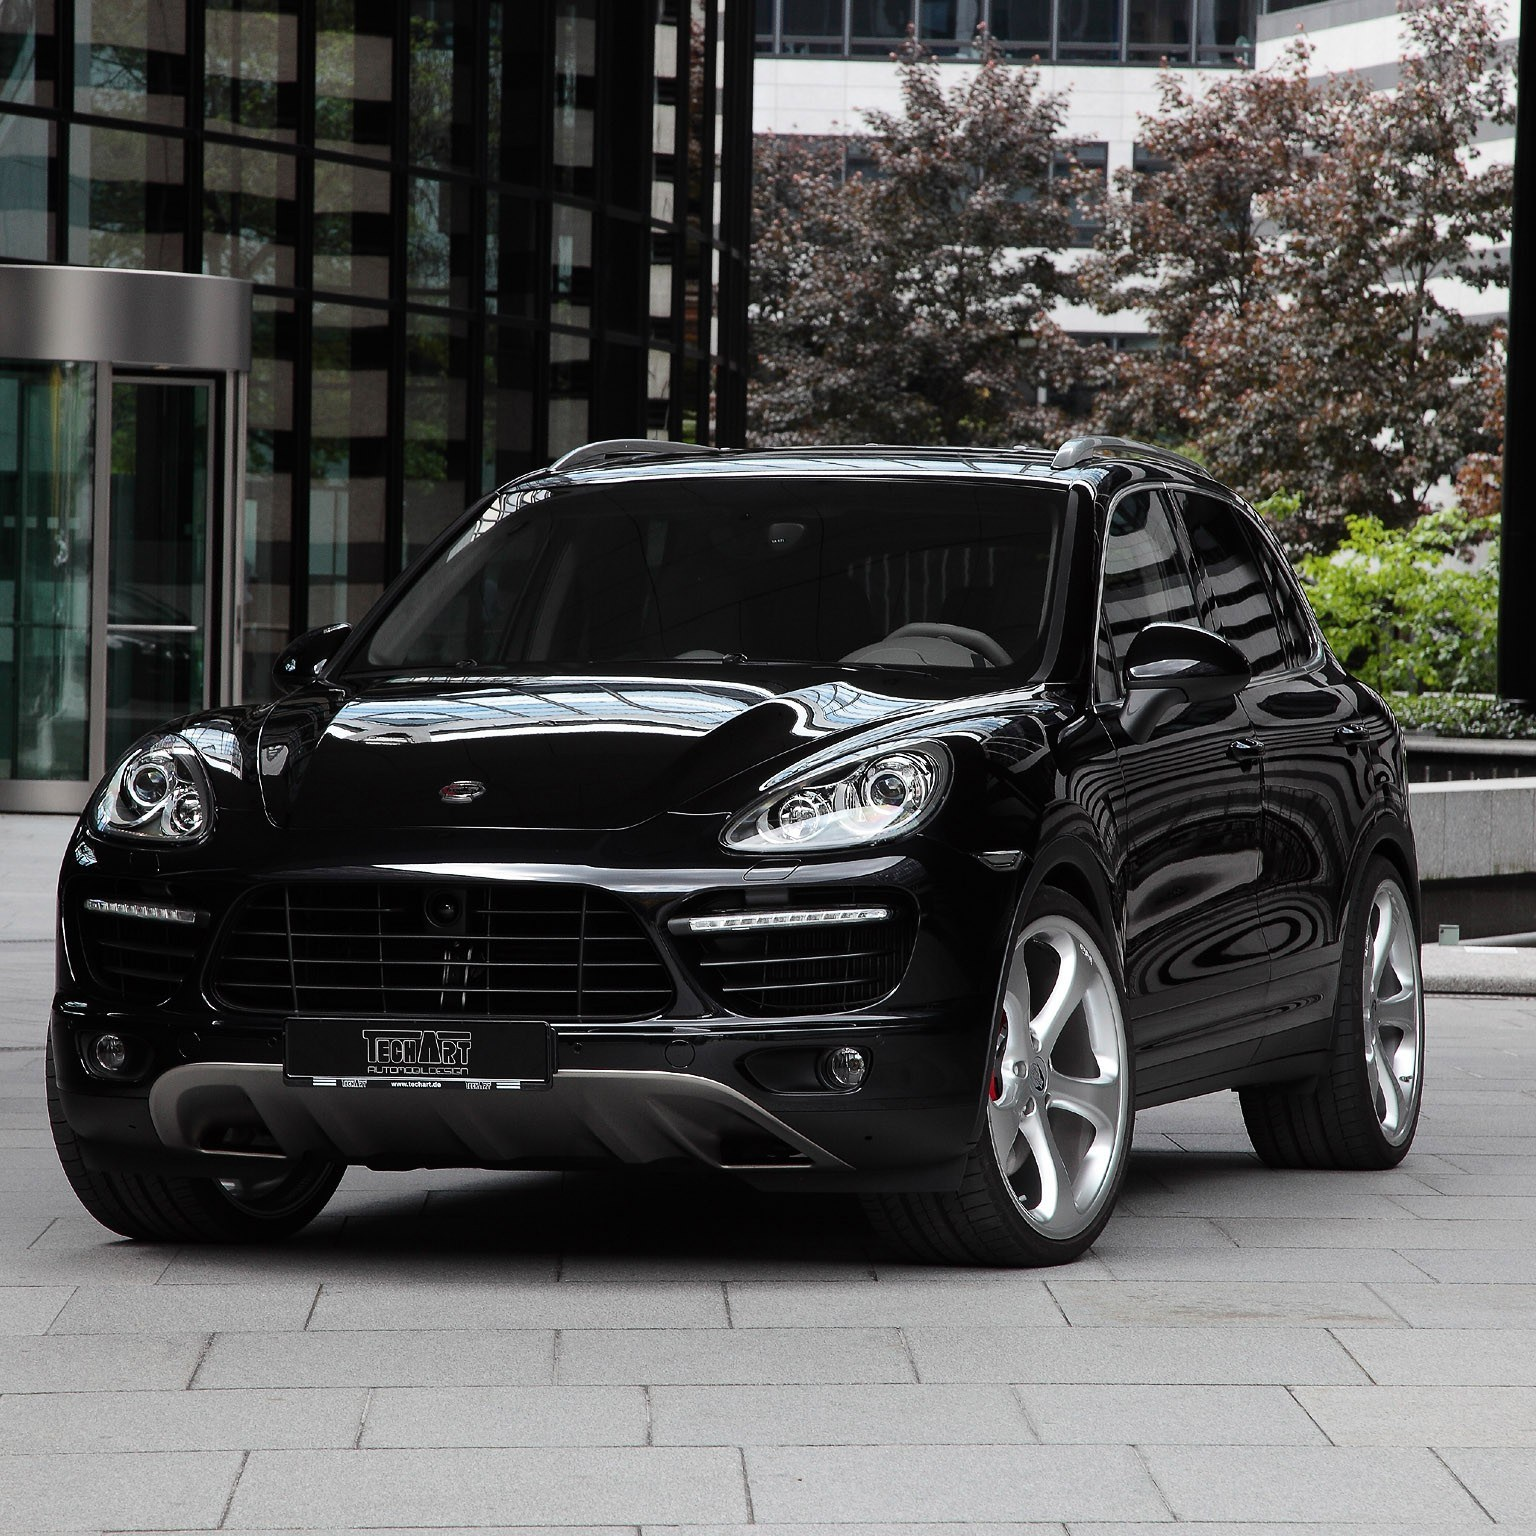 2010 Techart Porsche Cayenne